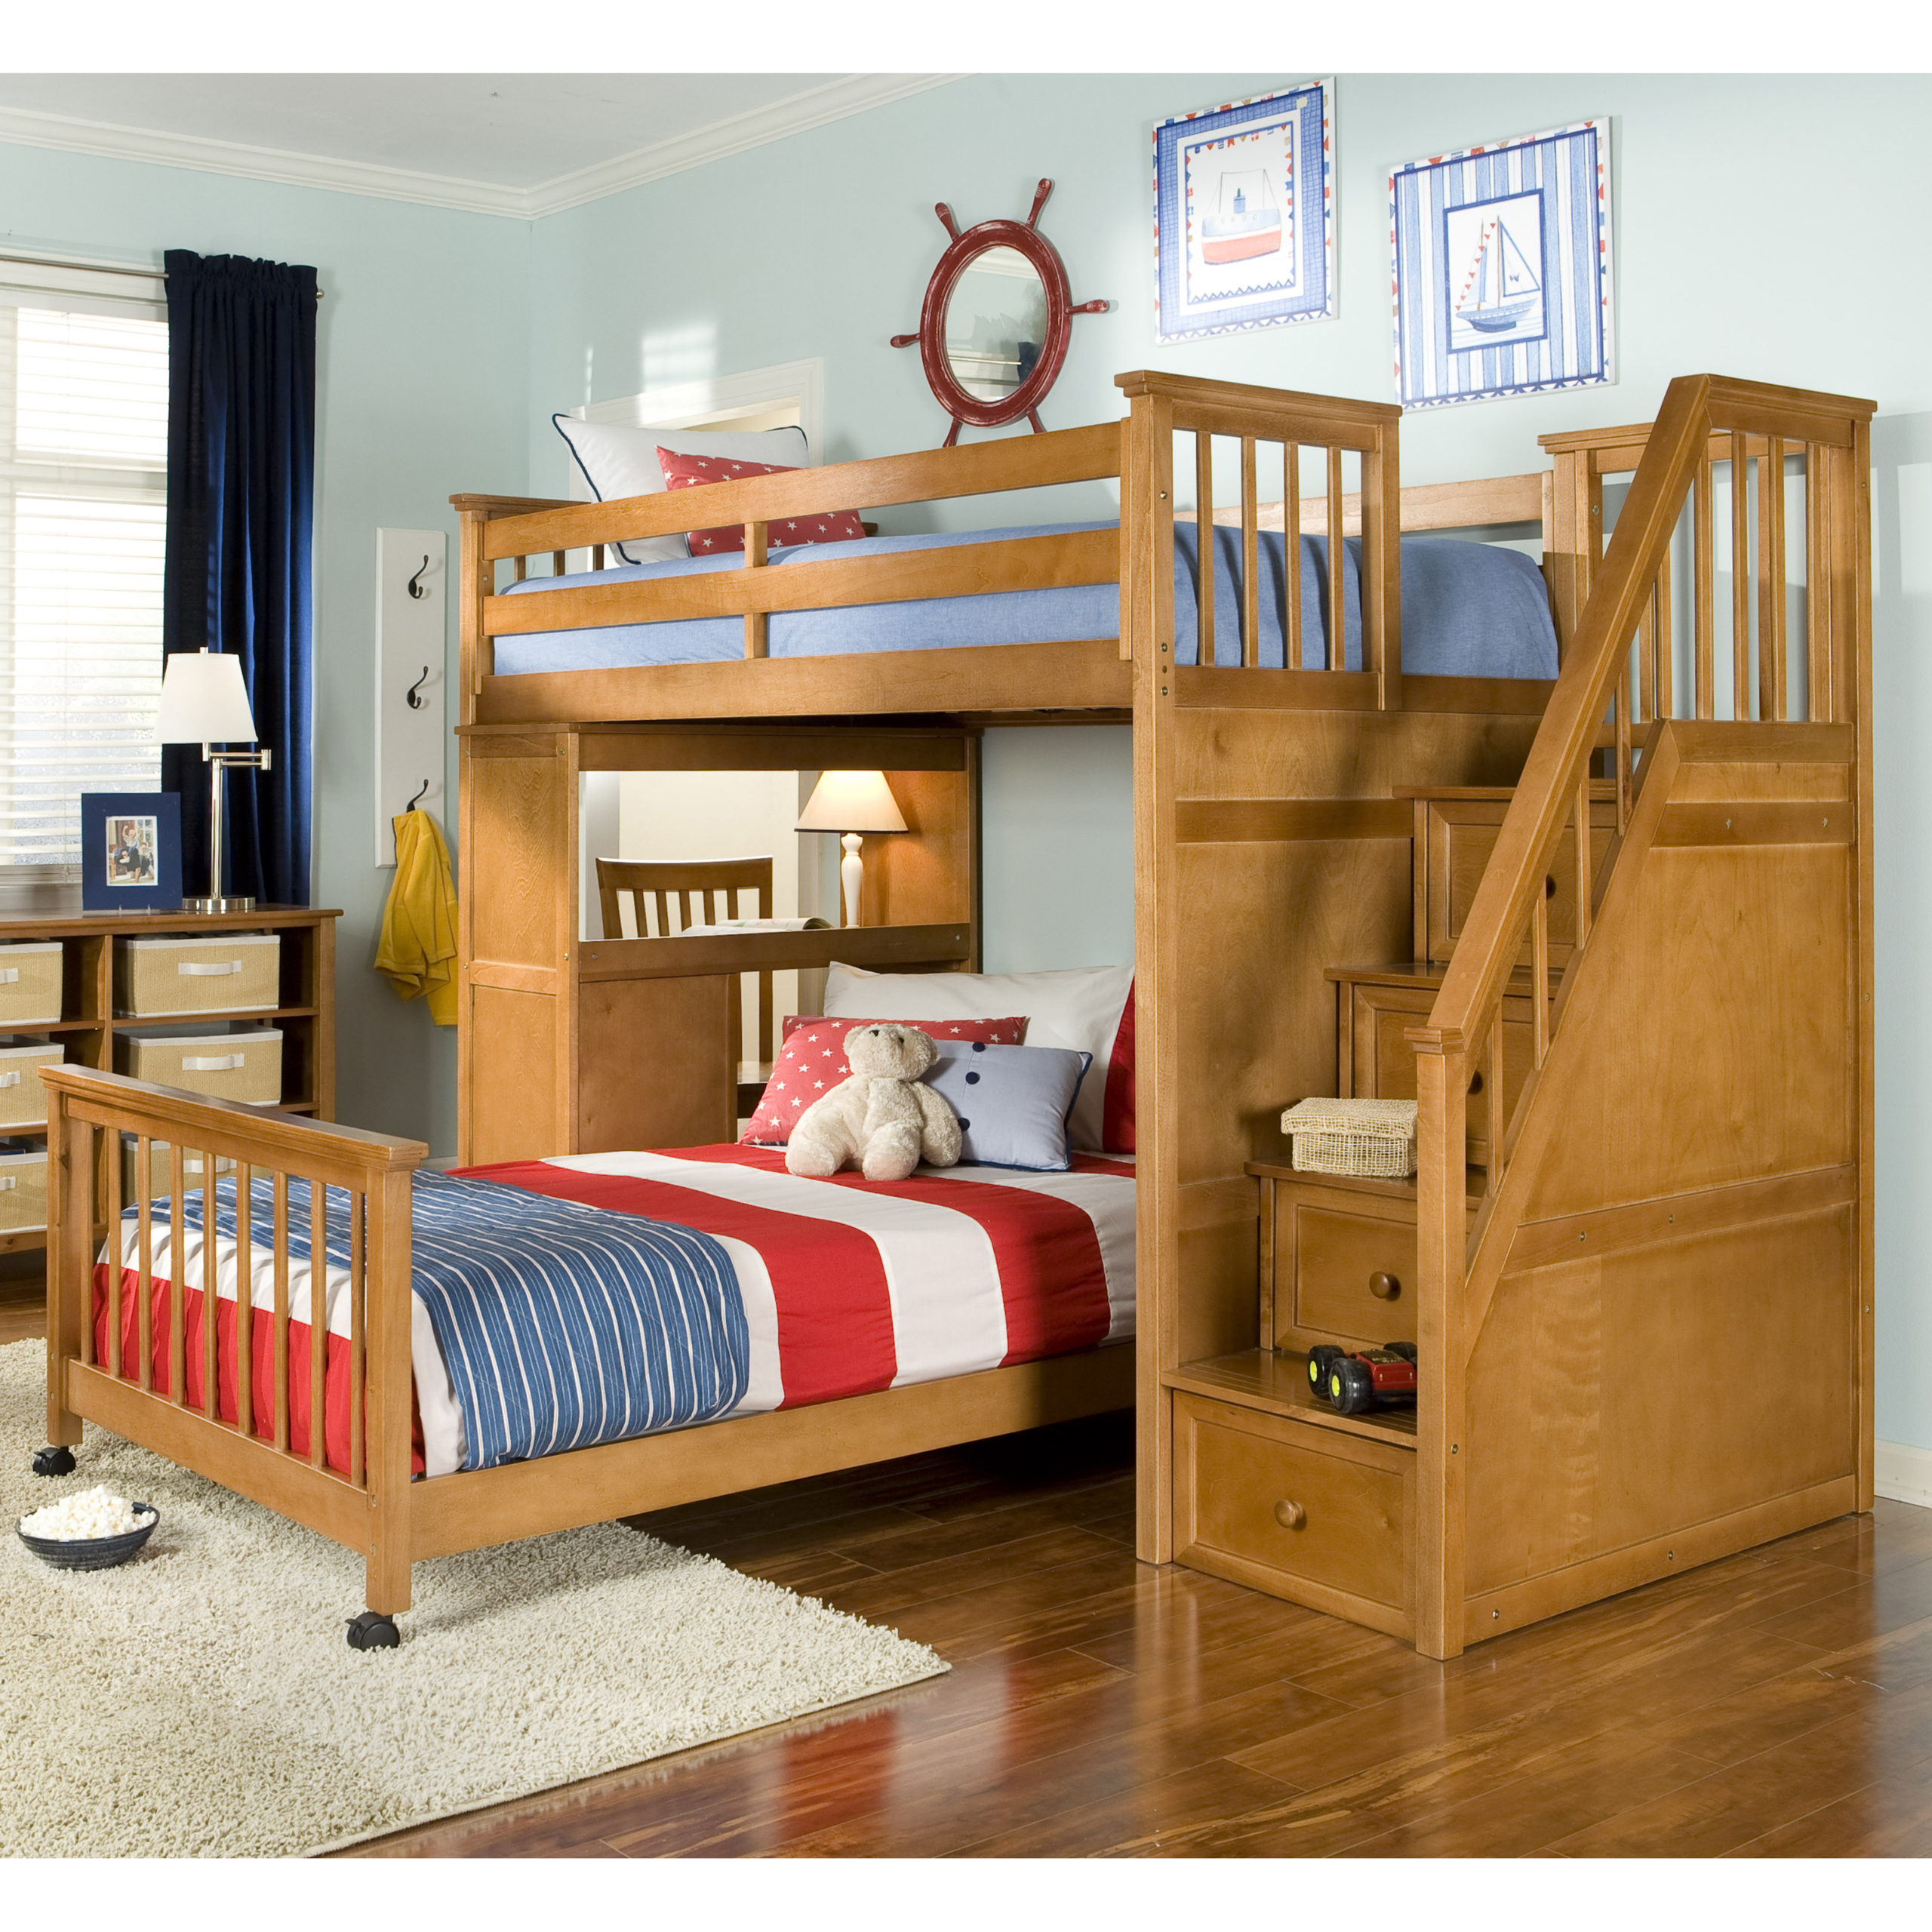 Picture of: Loft Bed With Storage Ideas On Foter